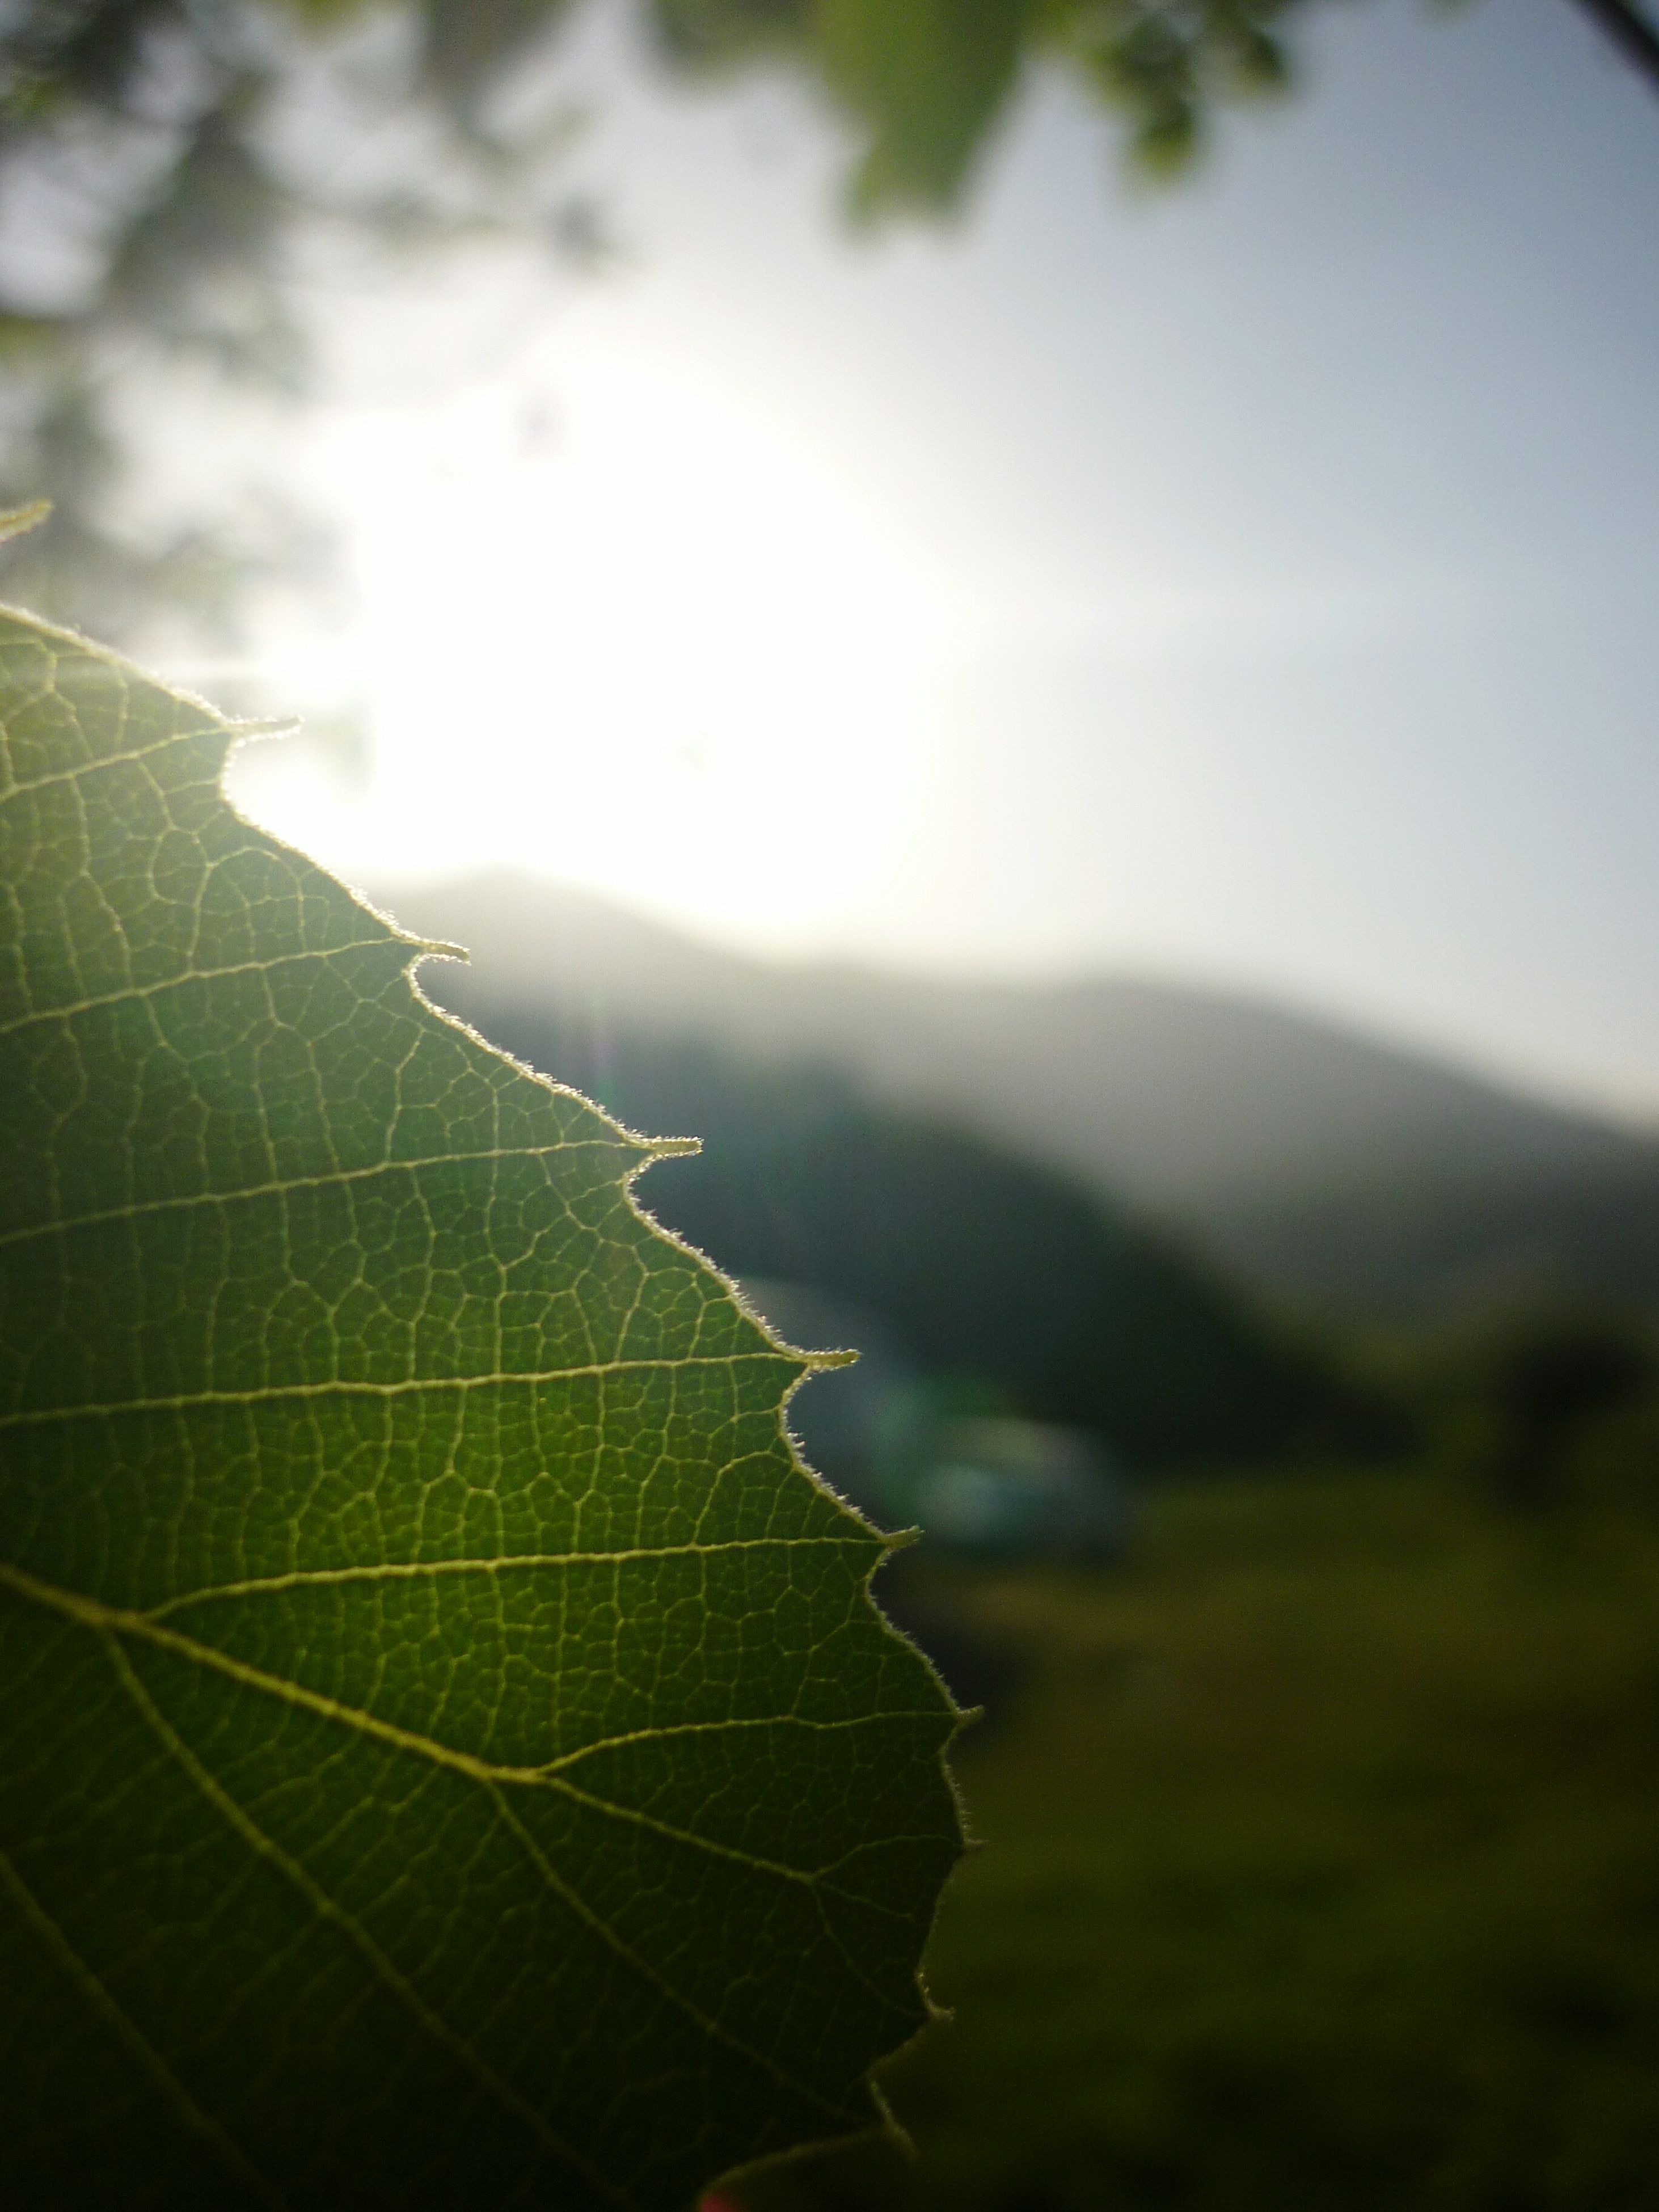 leaf, sun, sunlight, green color, nature, tranquility, focus on foreground, sky, growth, beauty in nature, close-up, sunbeam, lens flare, tranquil scene, plant, leaf vein, outdoors, no people, scenics, day